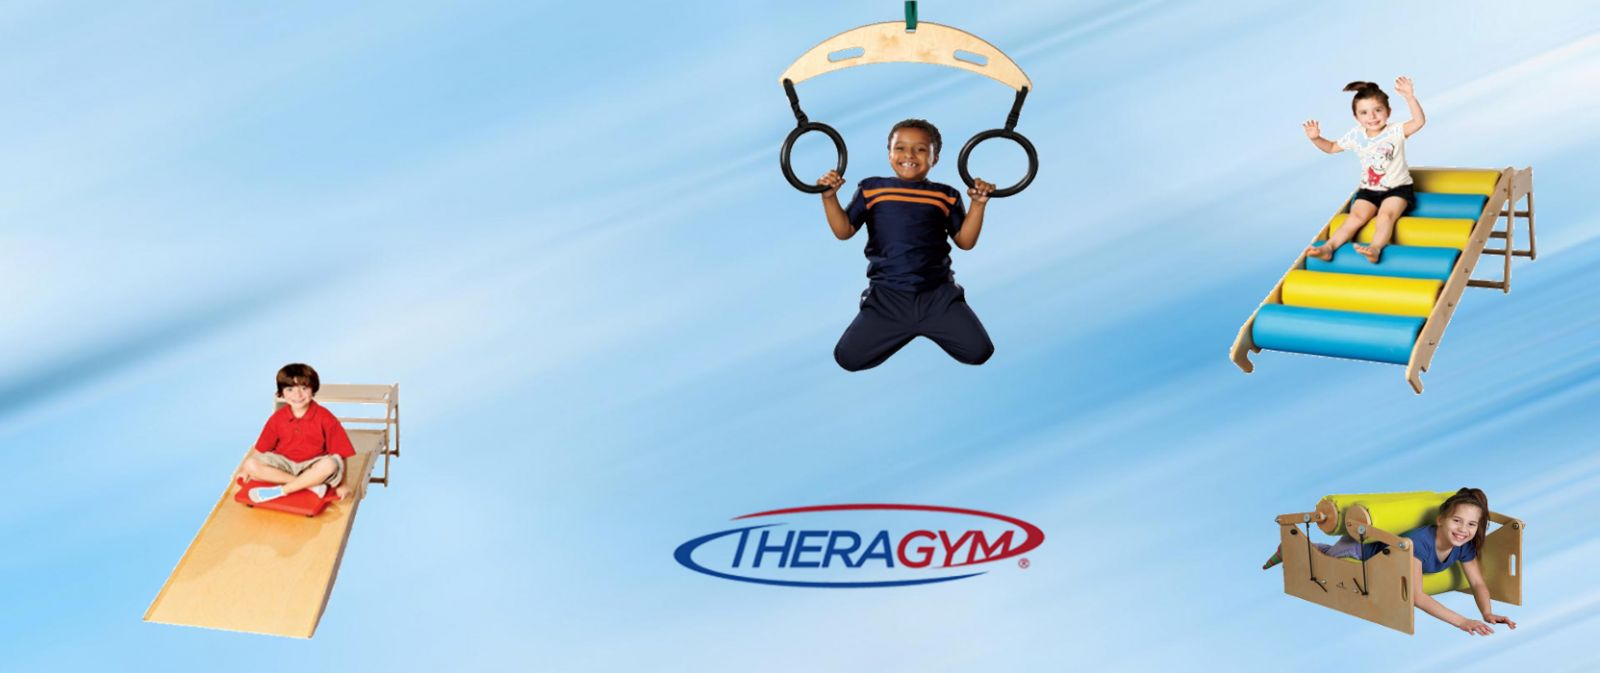 Theragym